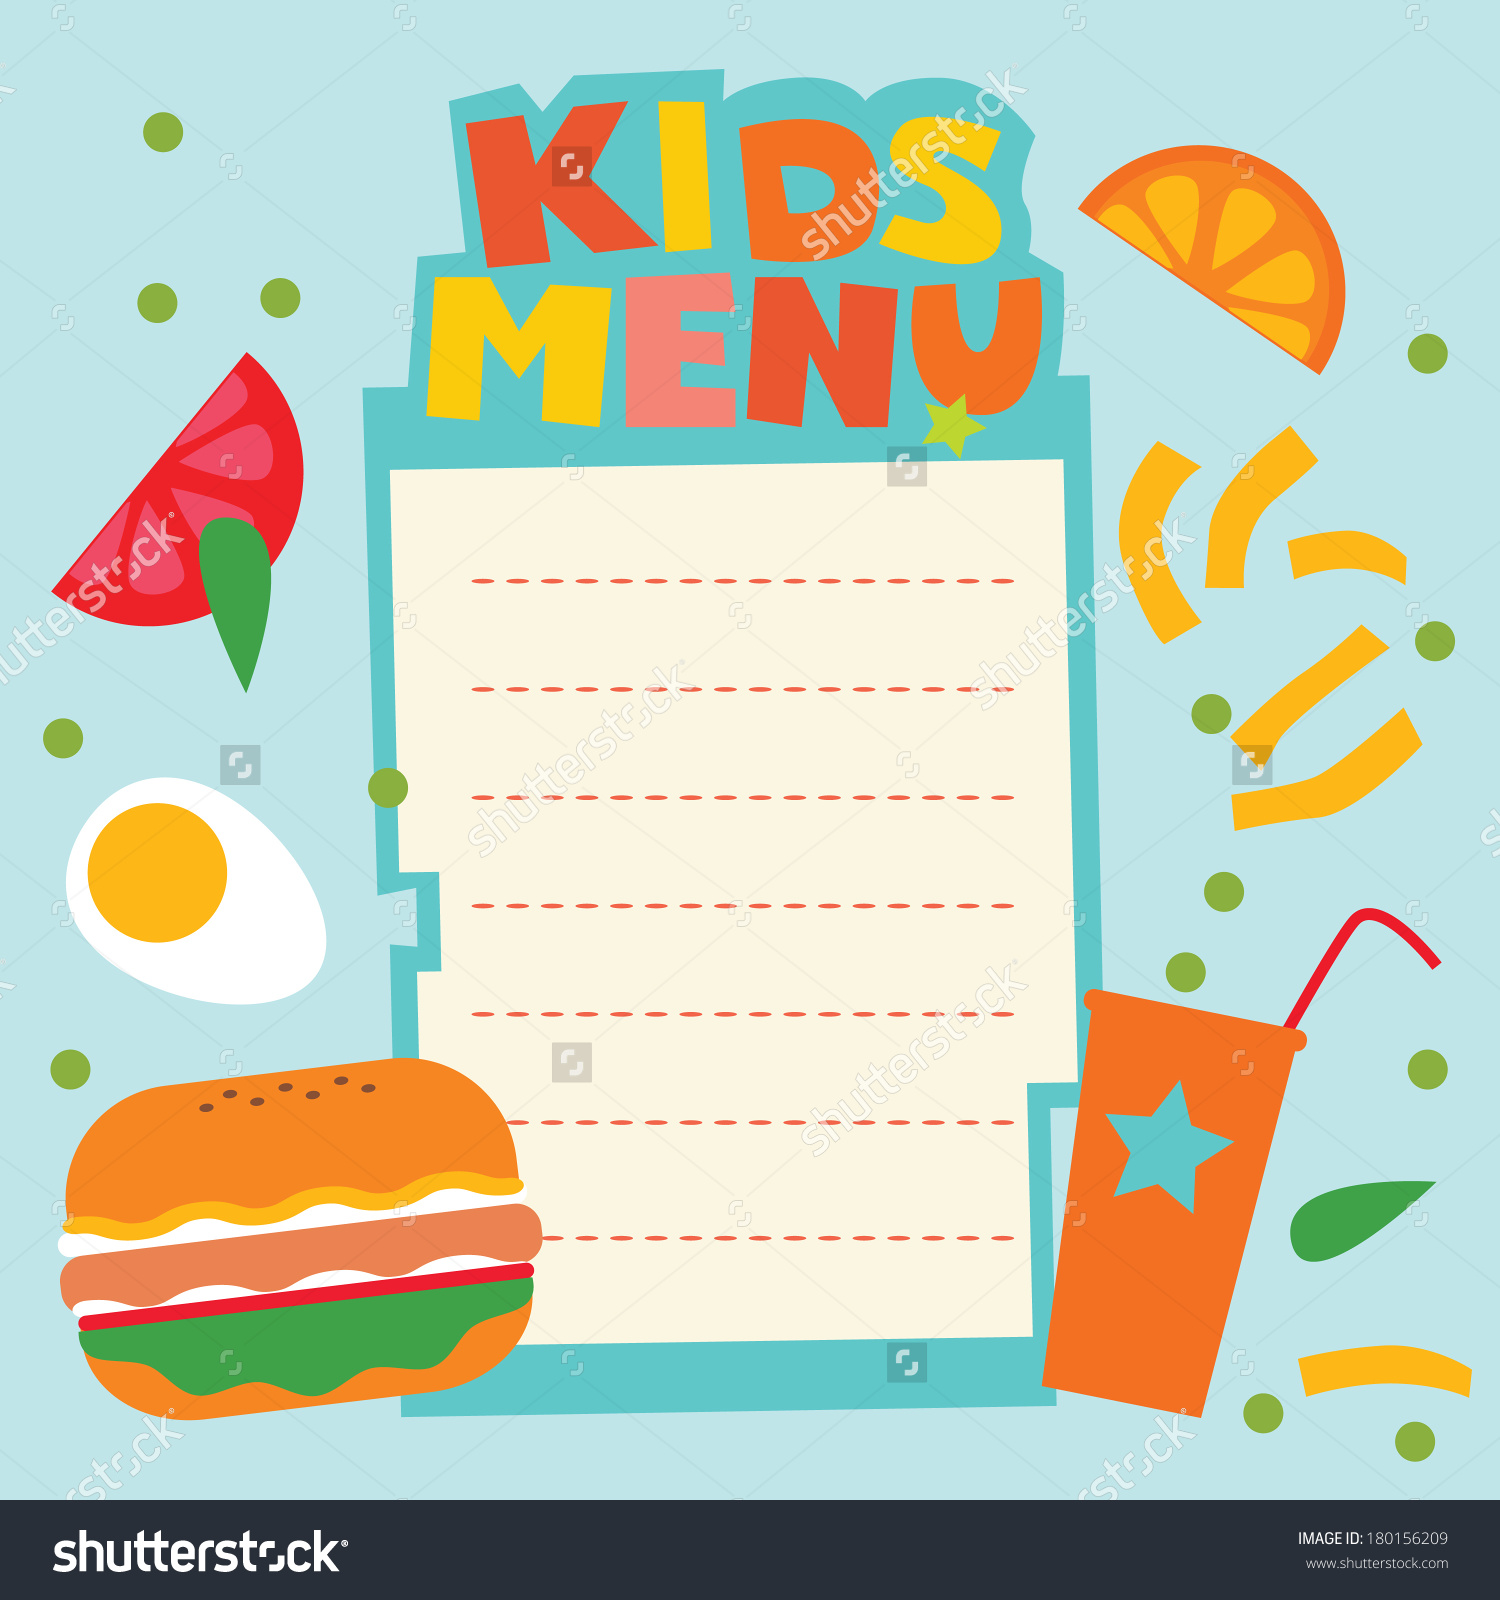 Menu design kids template. Catering clipart meal planning